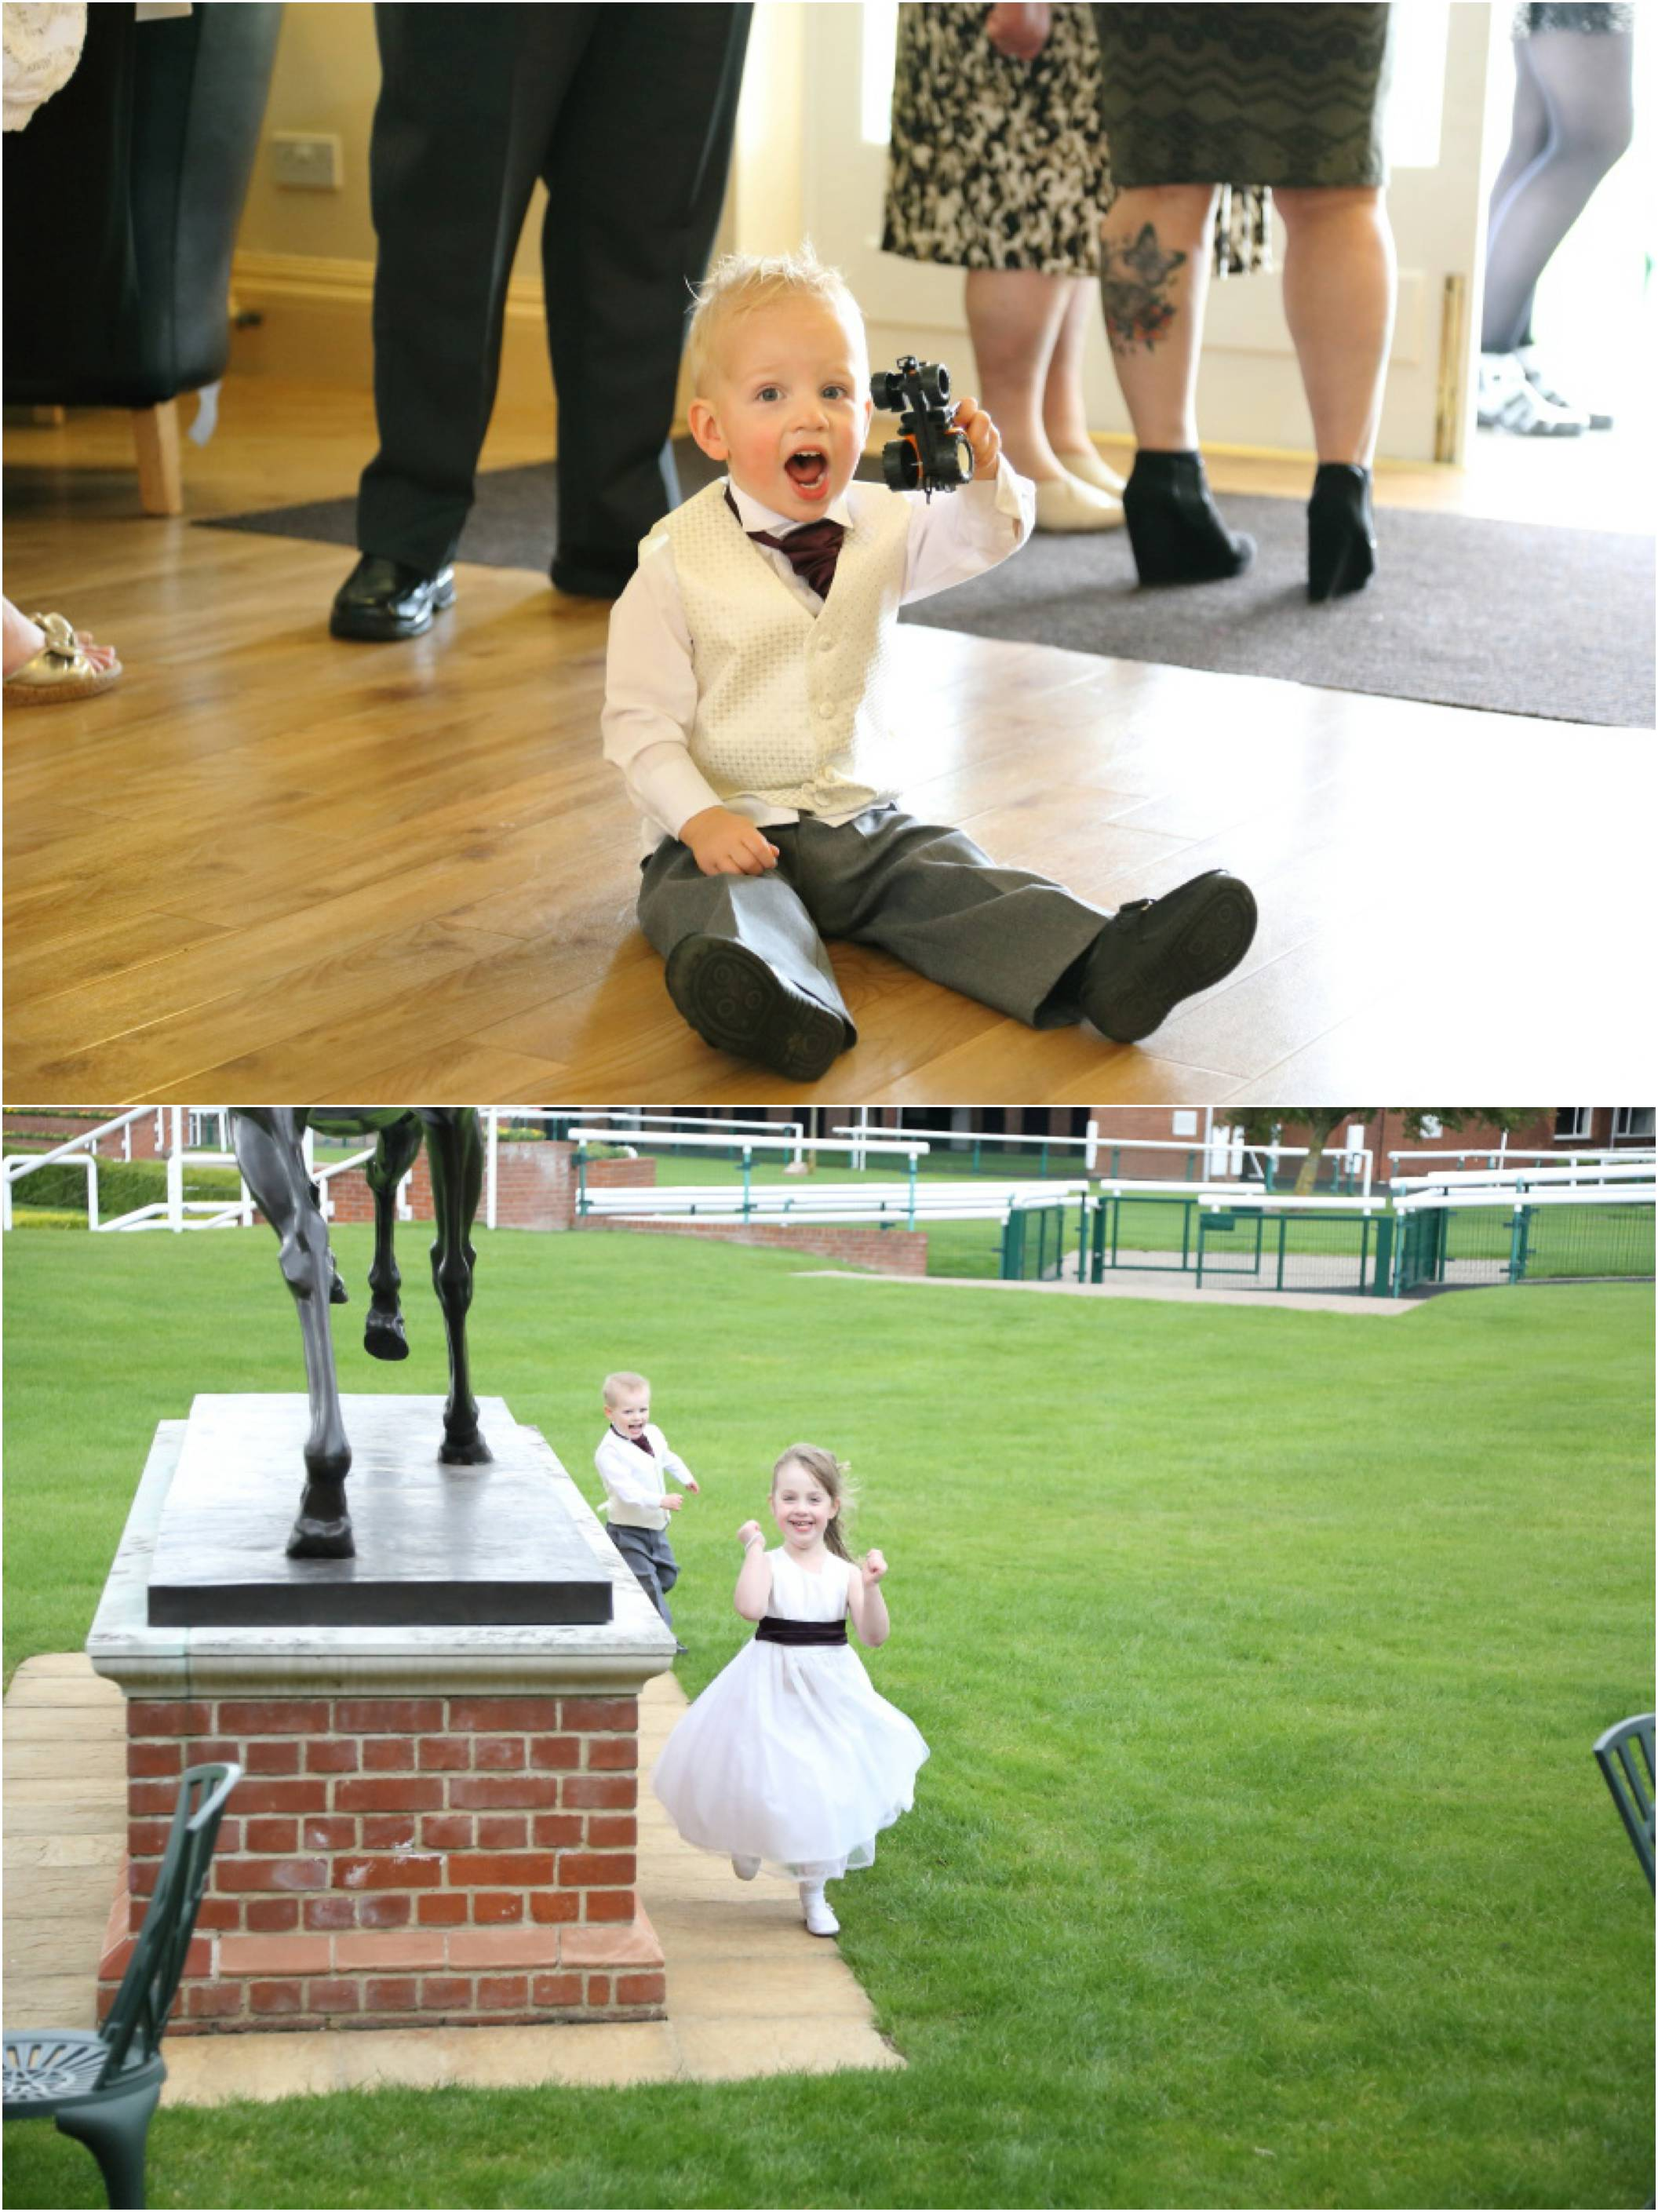 rowley-mile-mewmarkte-wedding-photography_0014